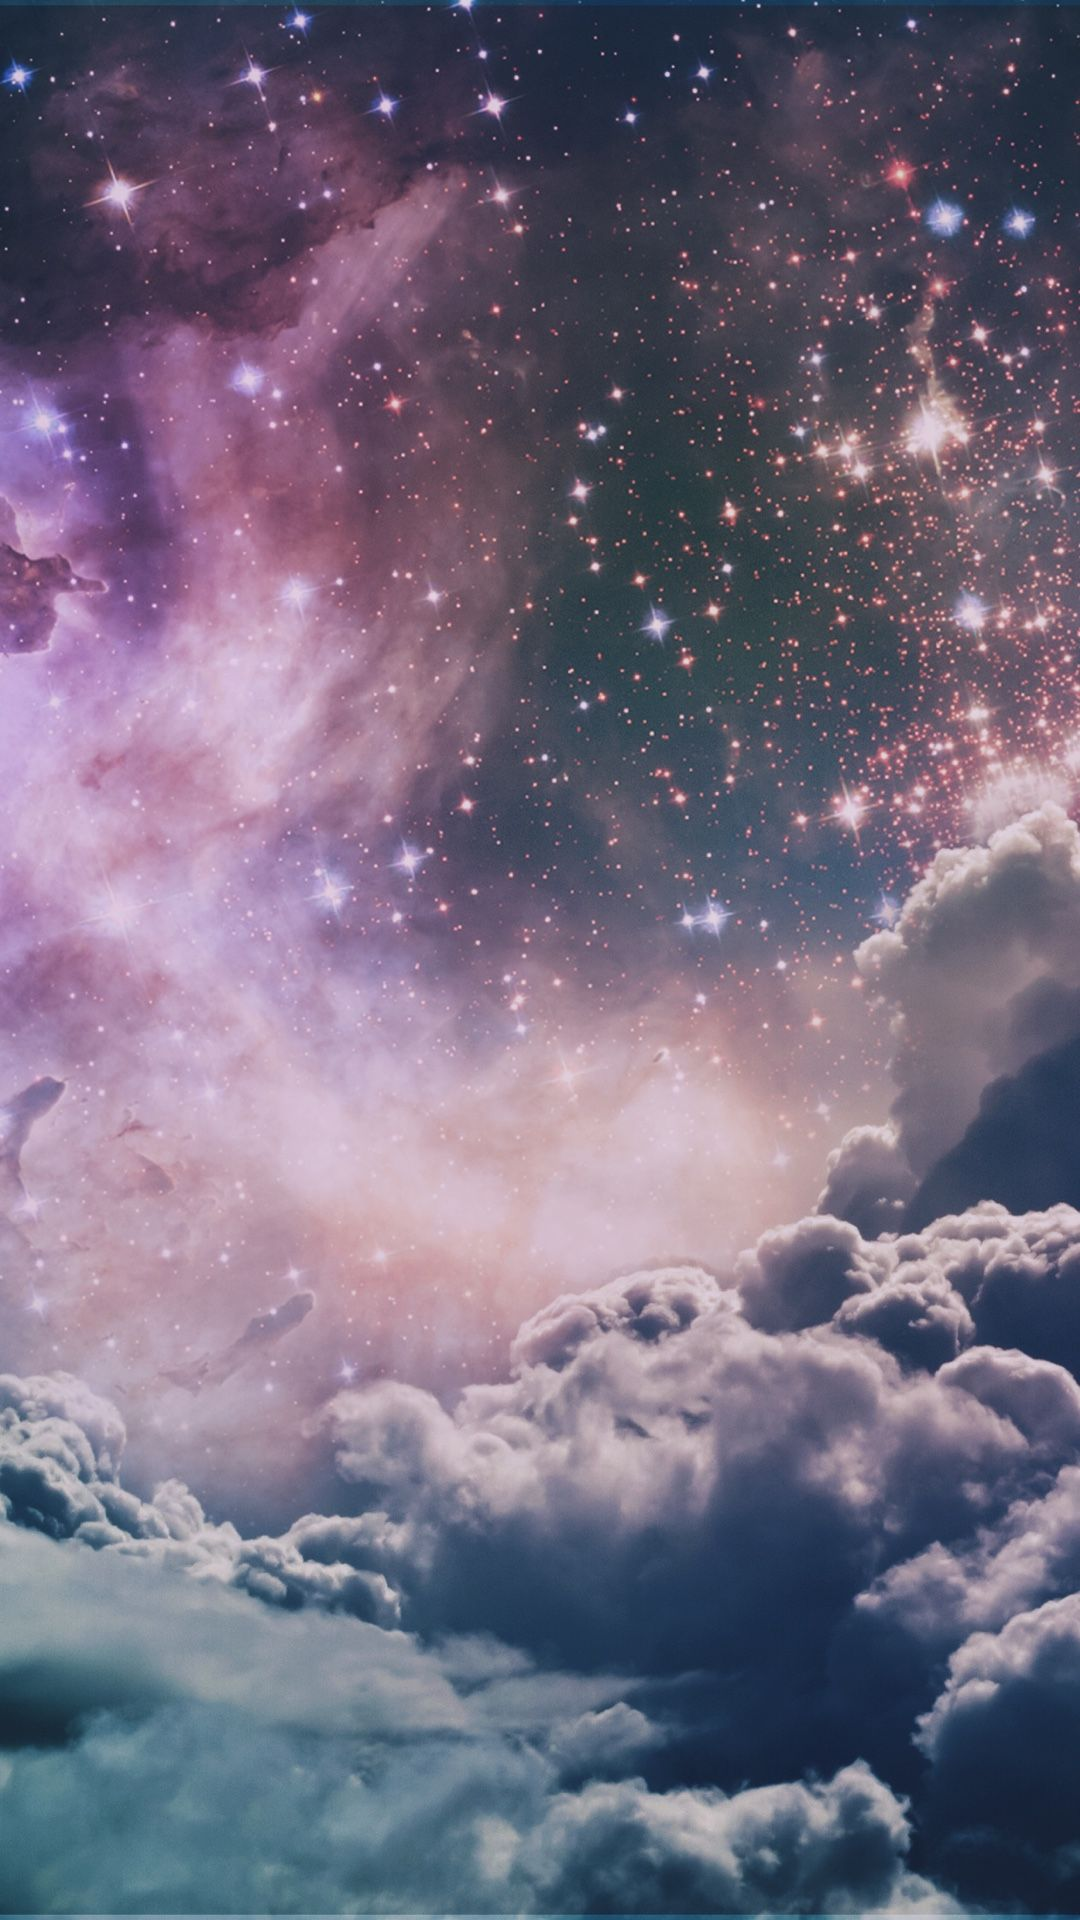 Wonderful galaxy wallpaper for your iPhone XS from Everpix #wallpaper #wallpaperiphone #inspiration #wallpaperbackgrounds